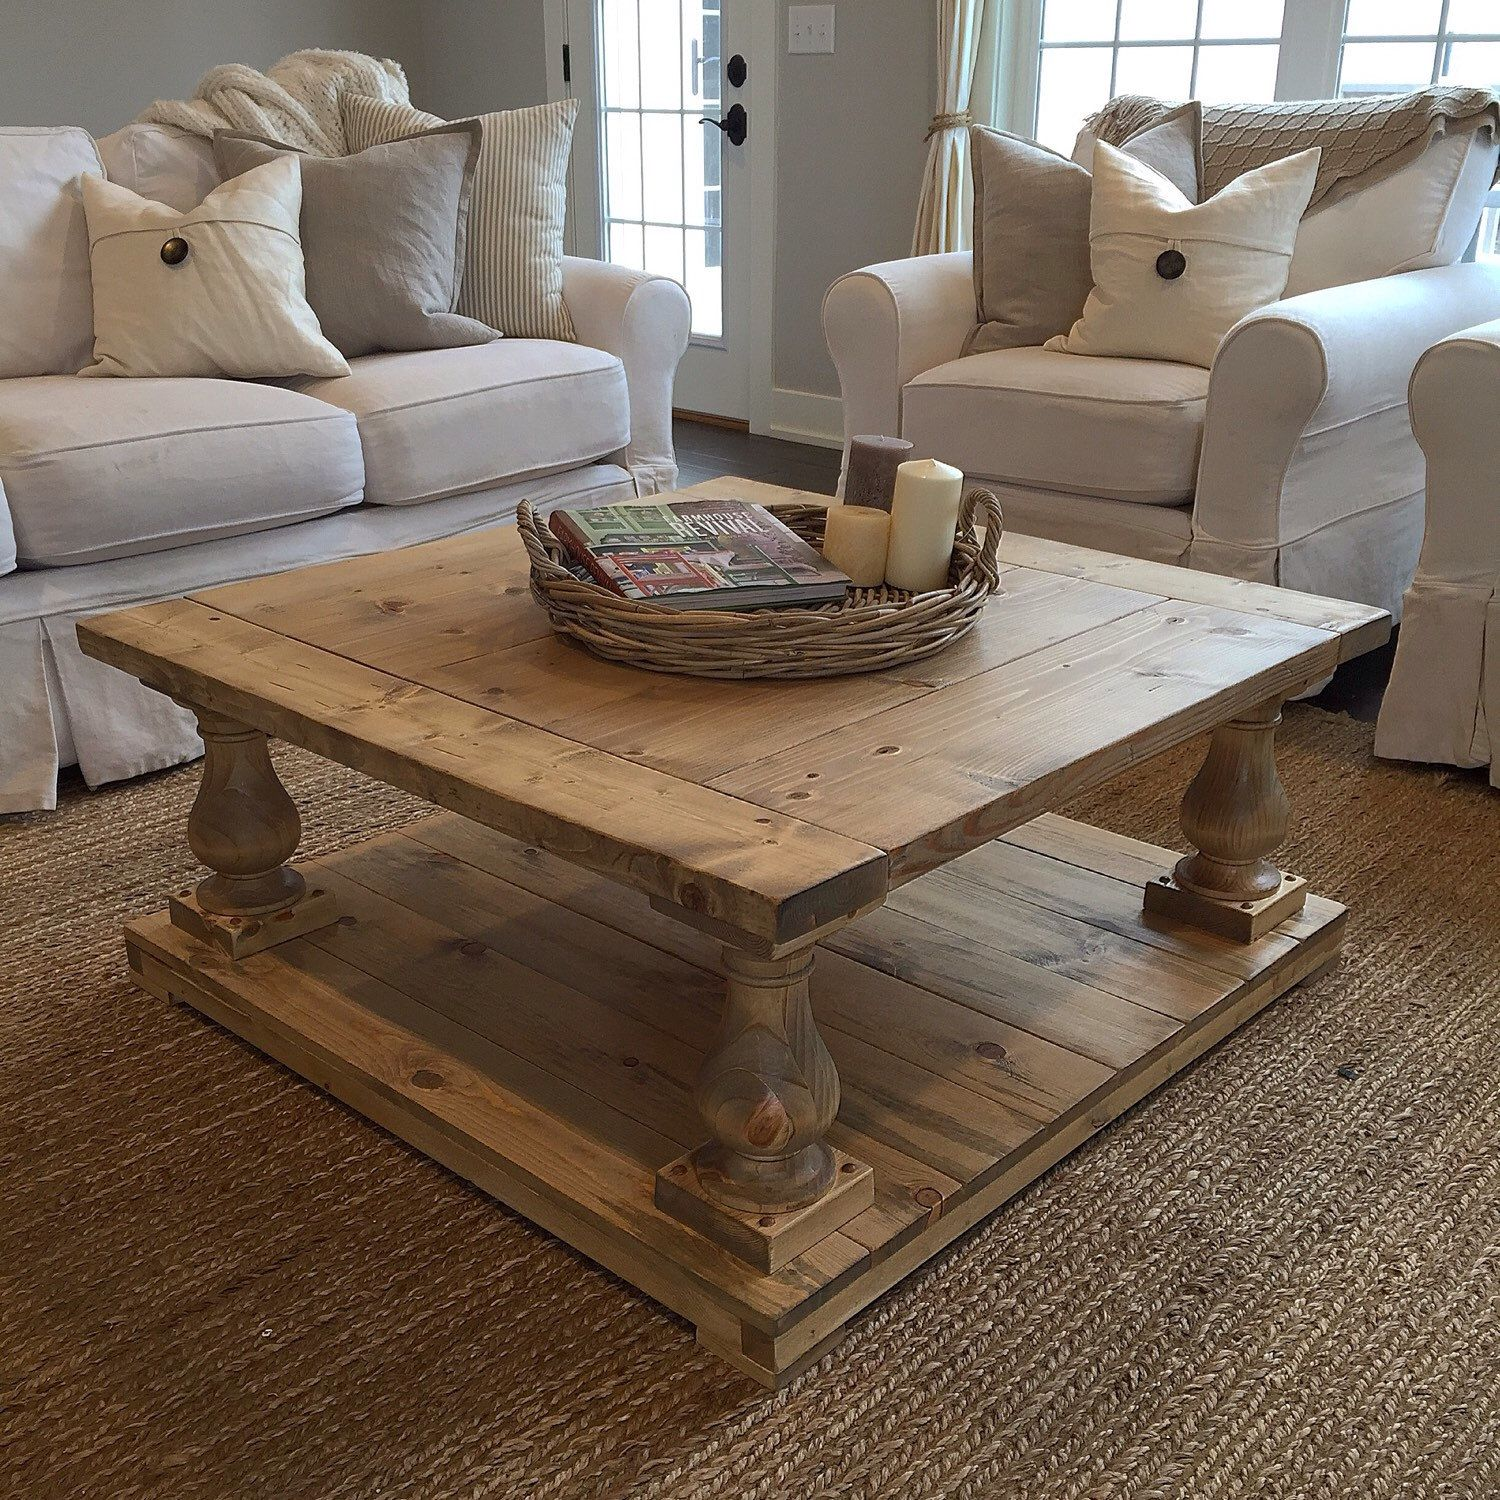 Rustic Beach Coffee Table Rustic Farmhouse Cottage Baluster Coffee Table Diy